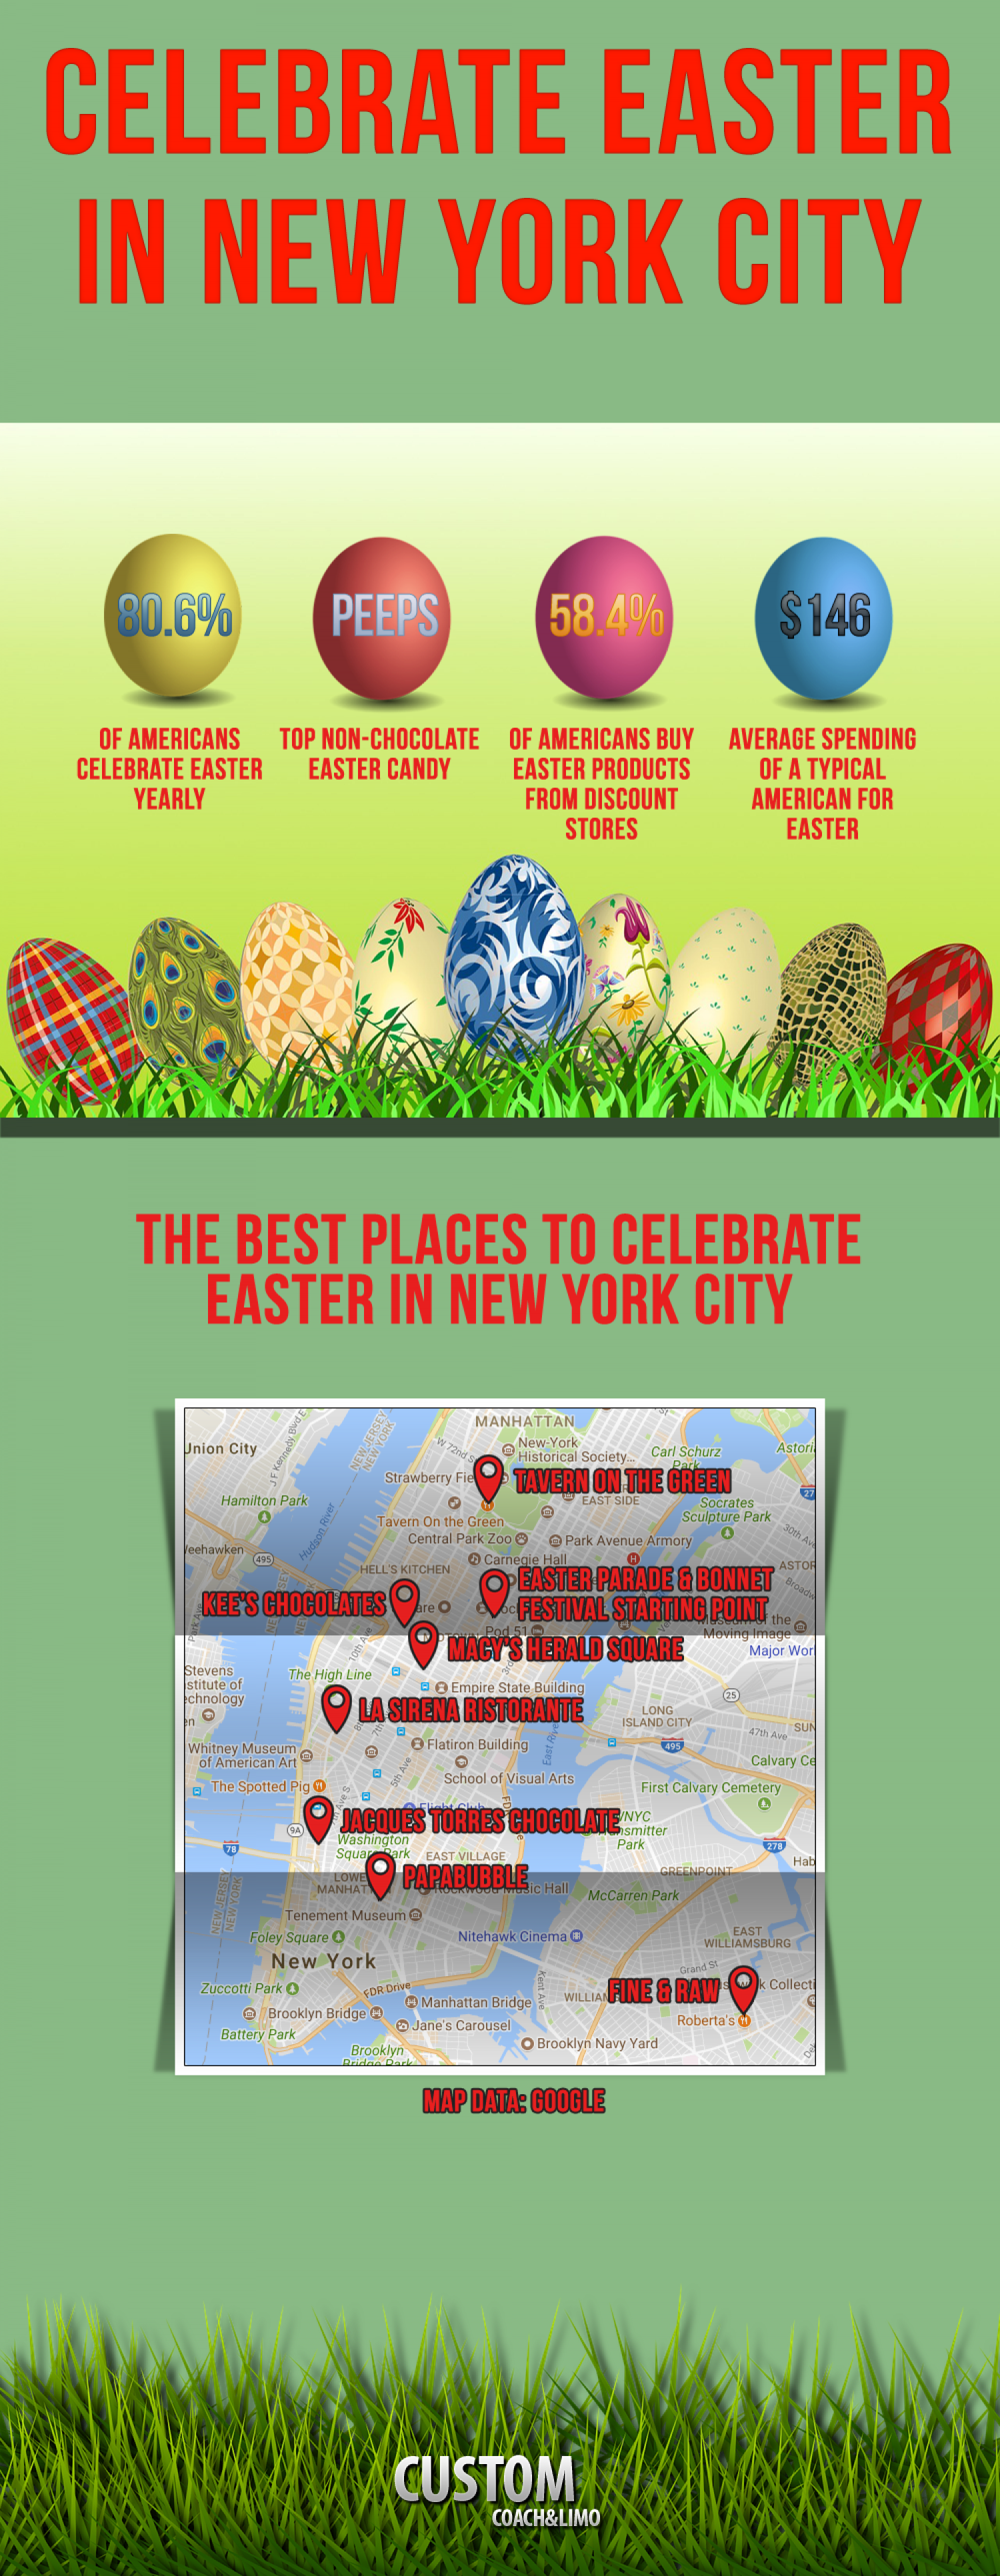 Celebrating Easter in New York City Infographic